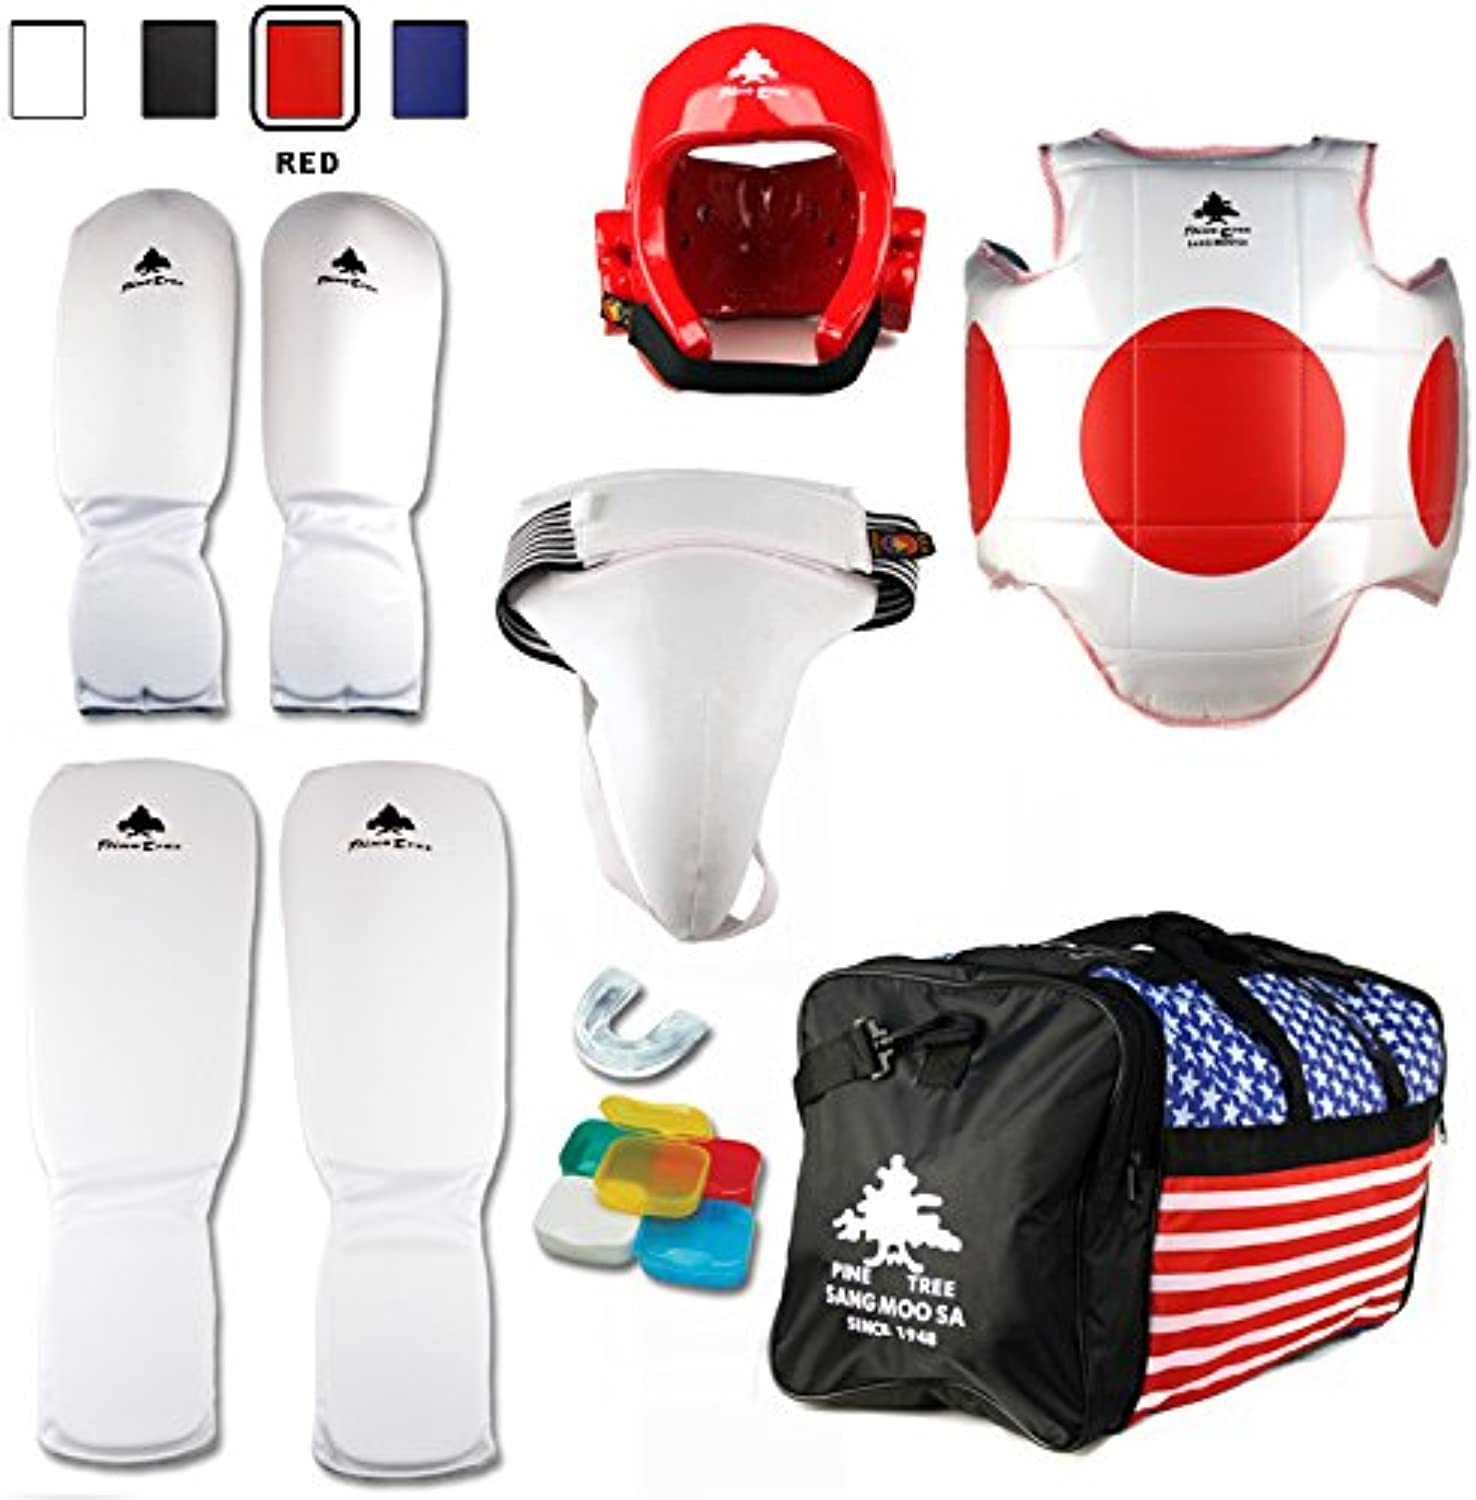 Pine Tree Complete Cloth Martial Arts Sparring Gear Set with Bag & Groin